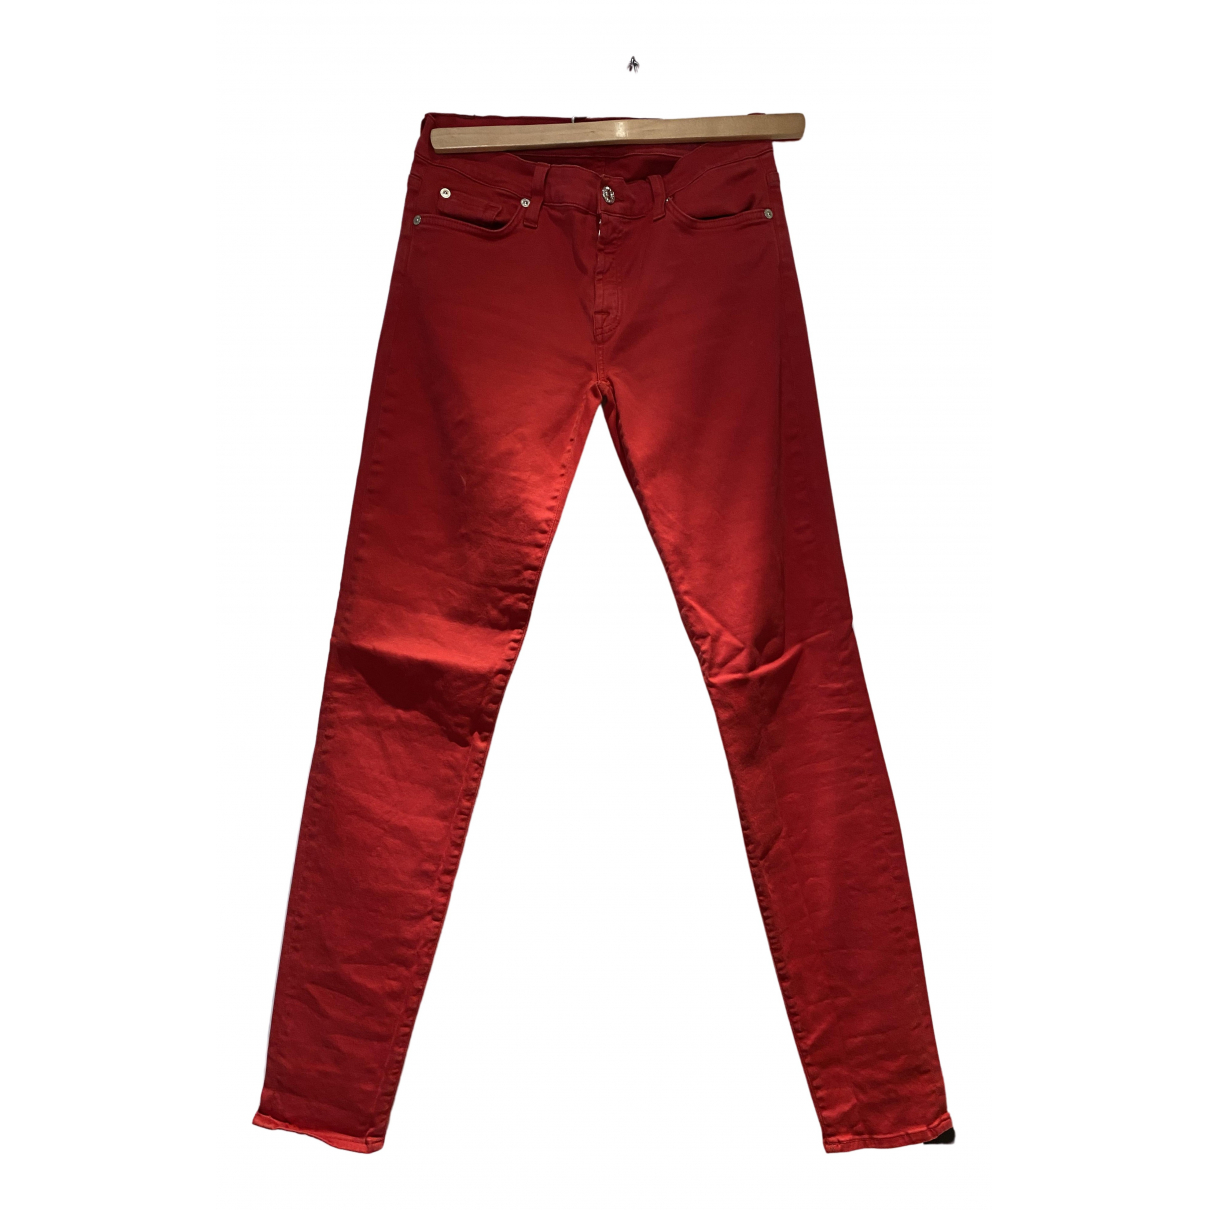 7 For All Mankind N Red Cotton Trousers for Women 8 UK